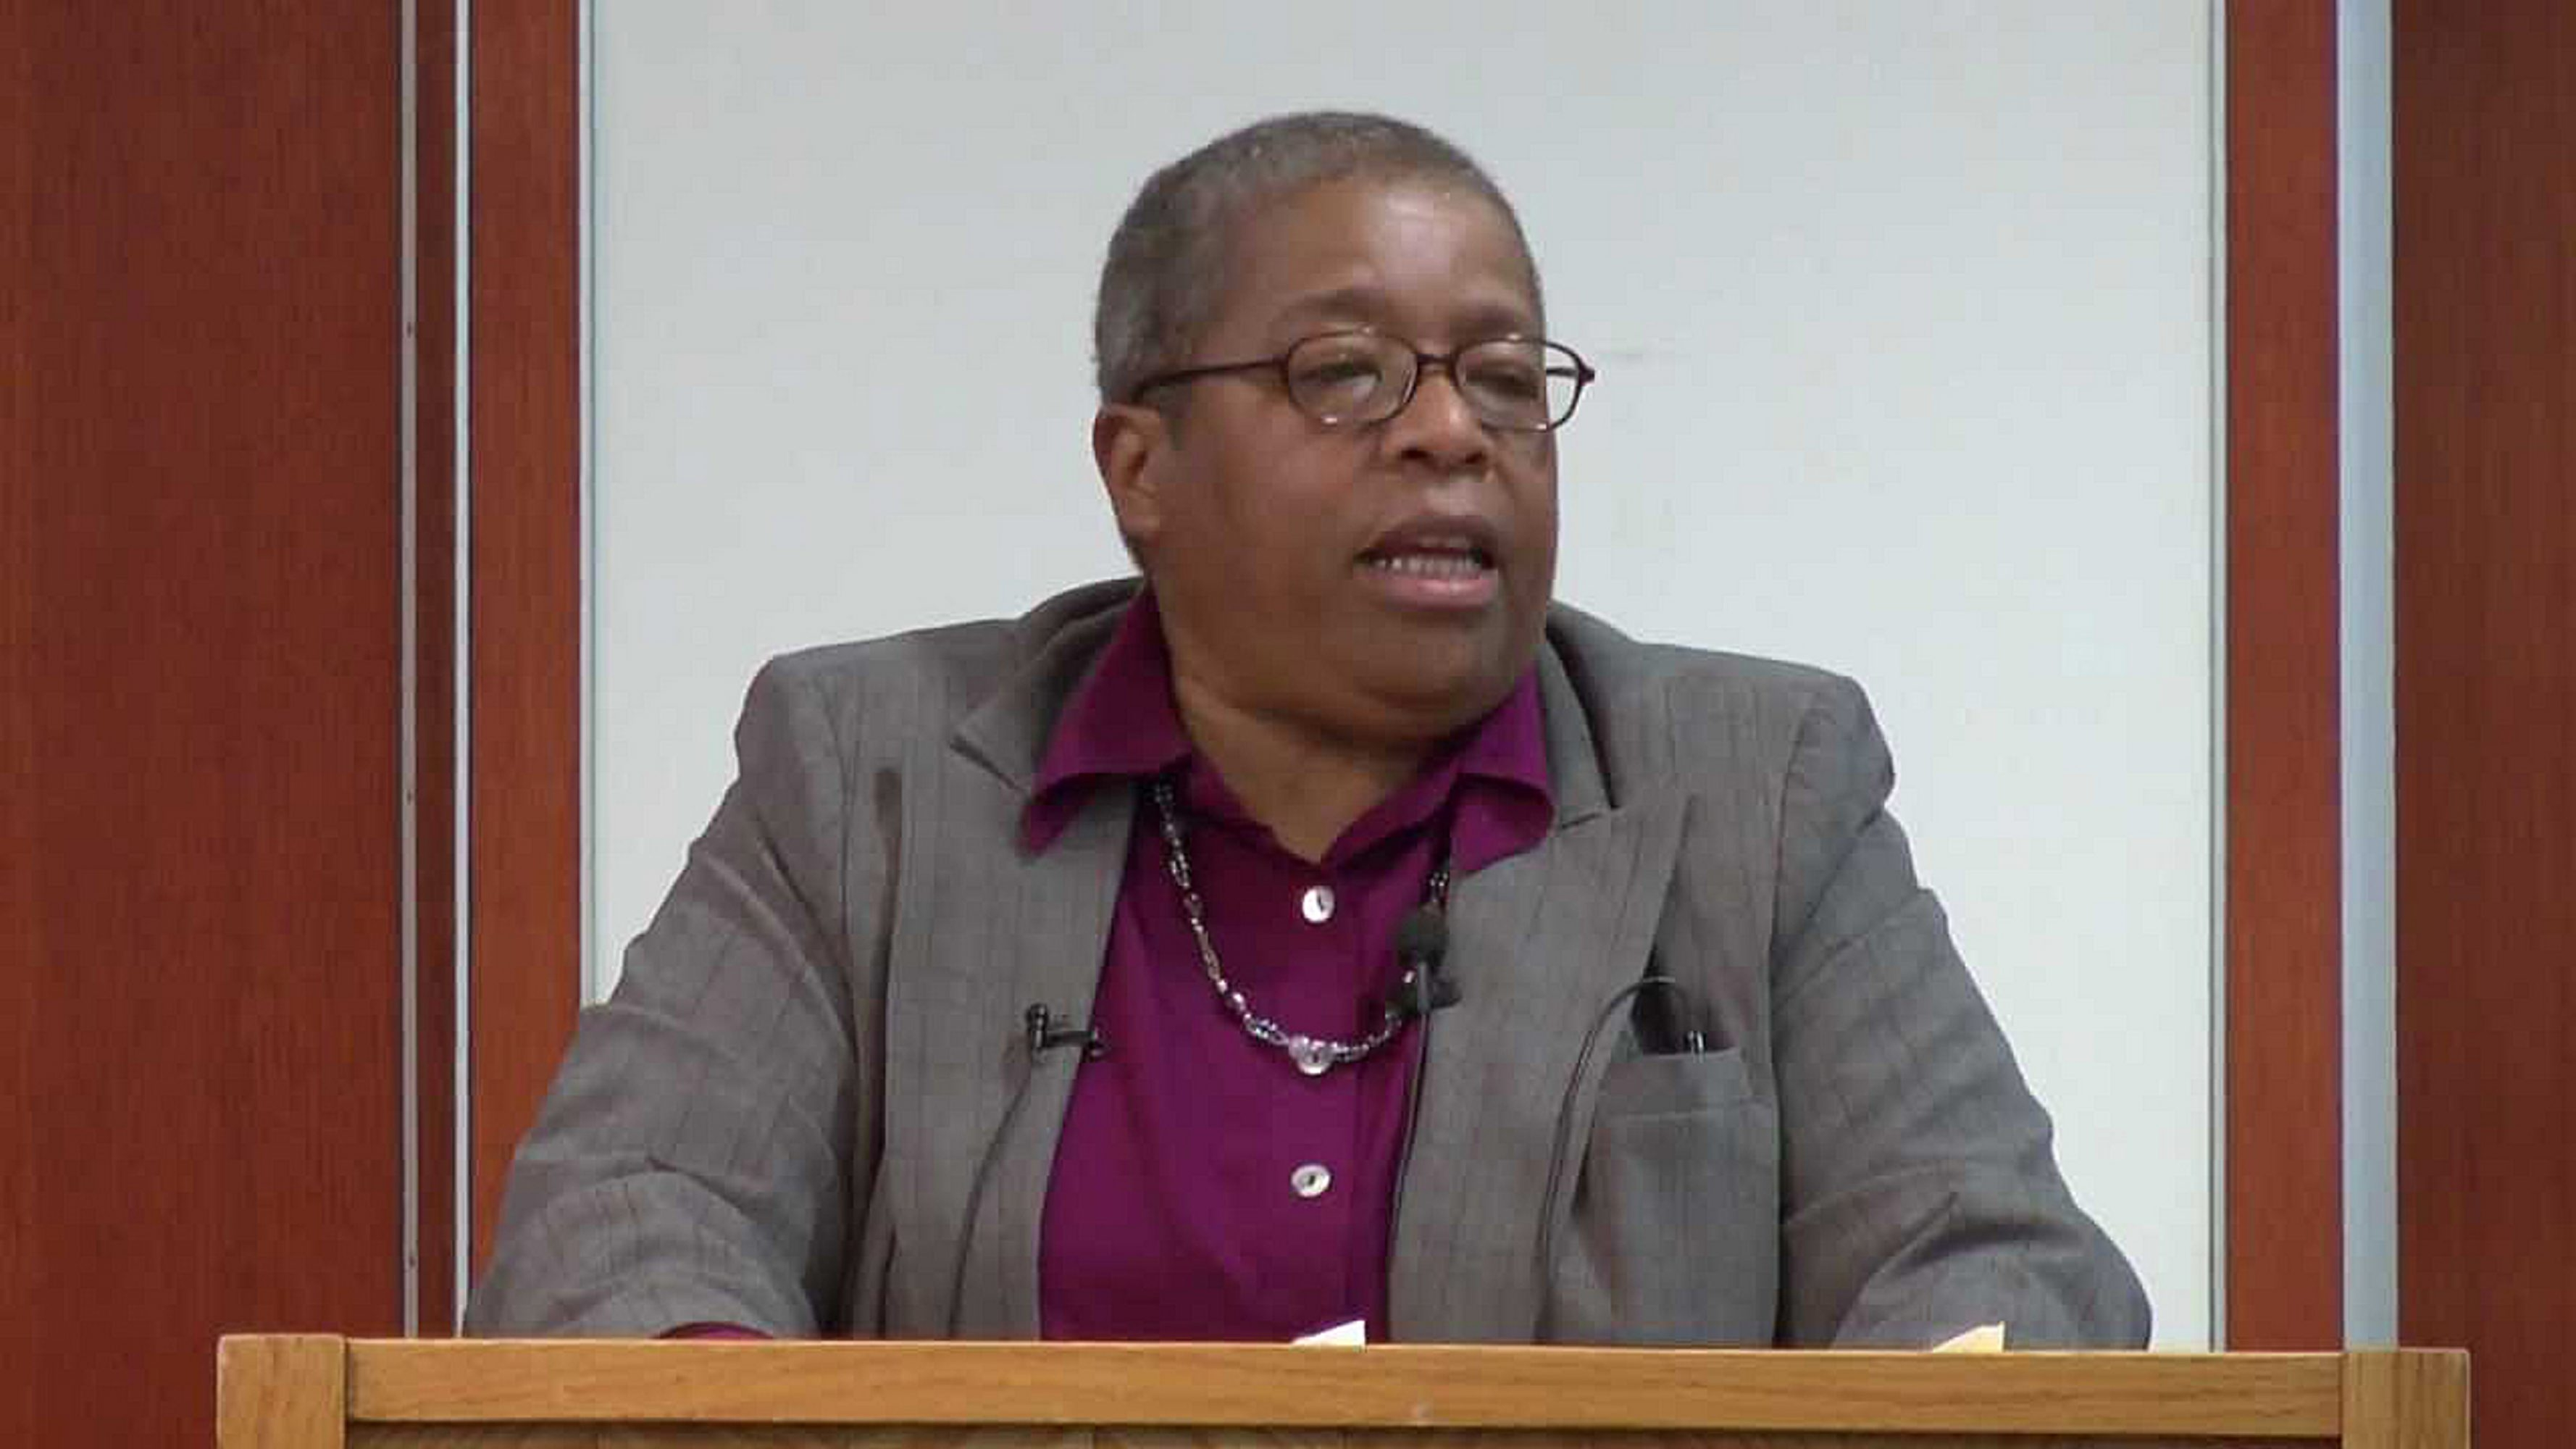 """I have a pontificate degree, but I don't pontificate,"" said Diana L. Hayes, who speaks Monday in UB's Newman Center."